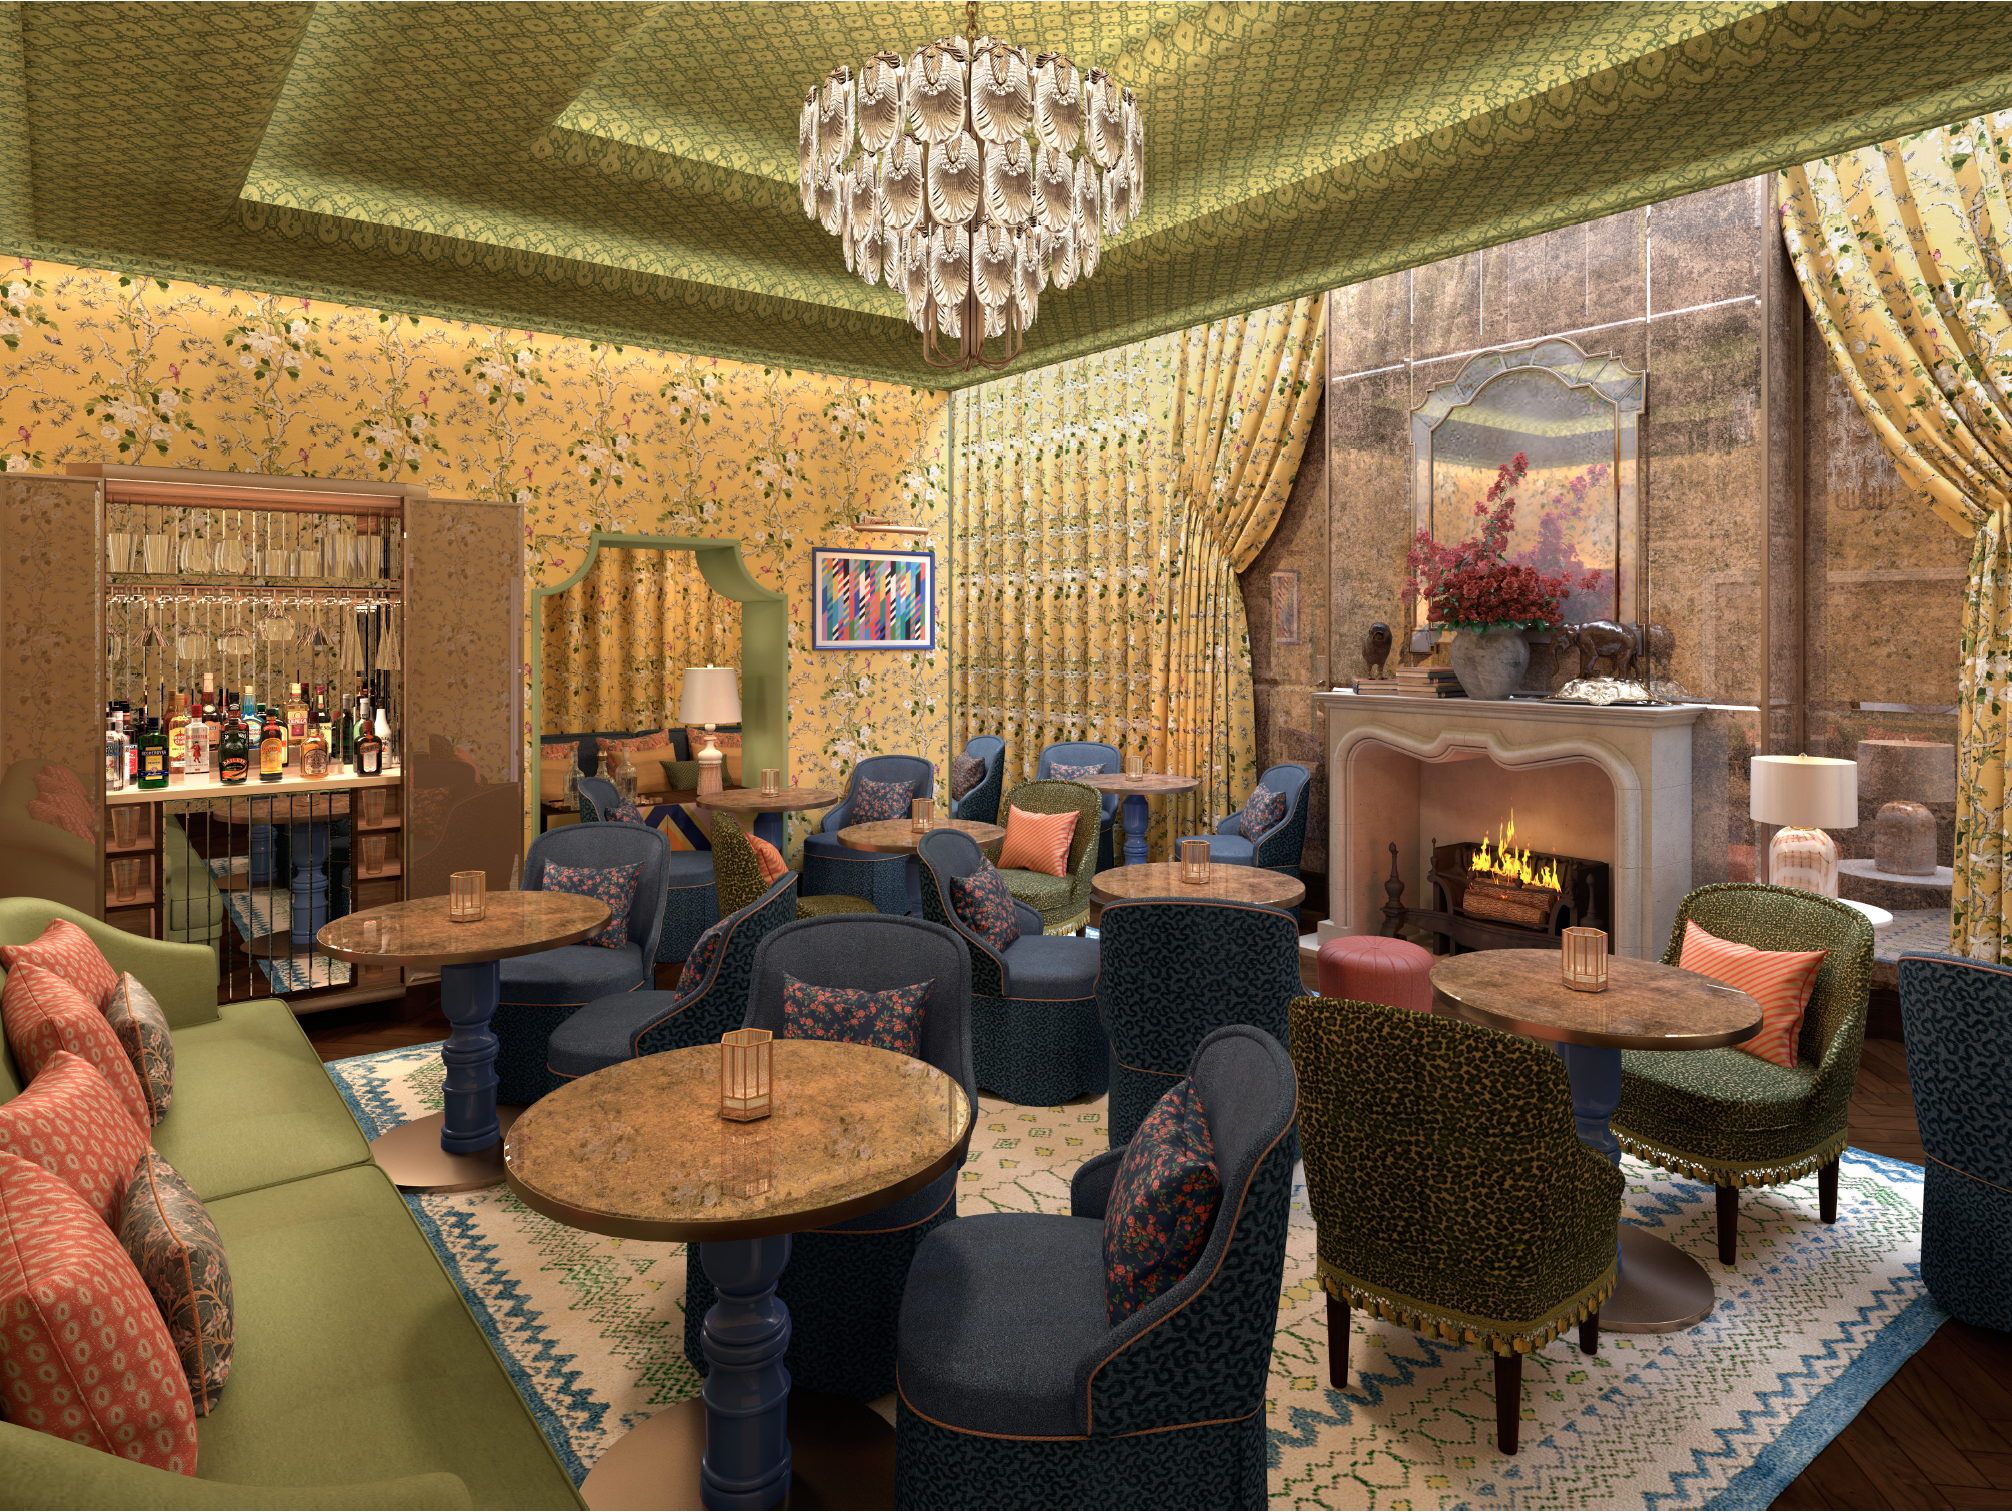 Broadwick hotel teases brand expression ahead of highly anticipated opening